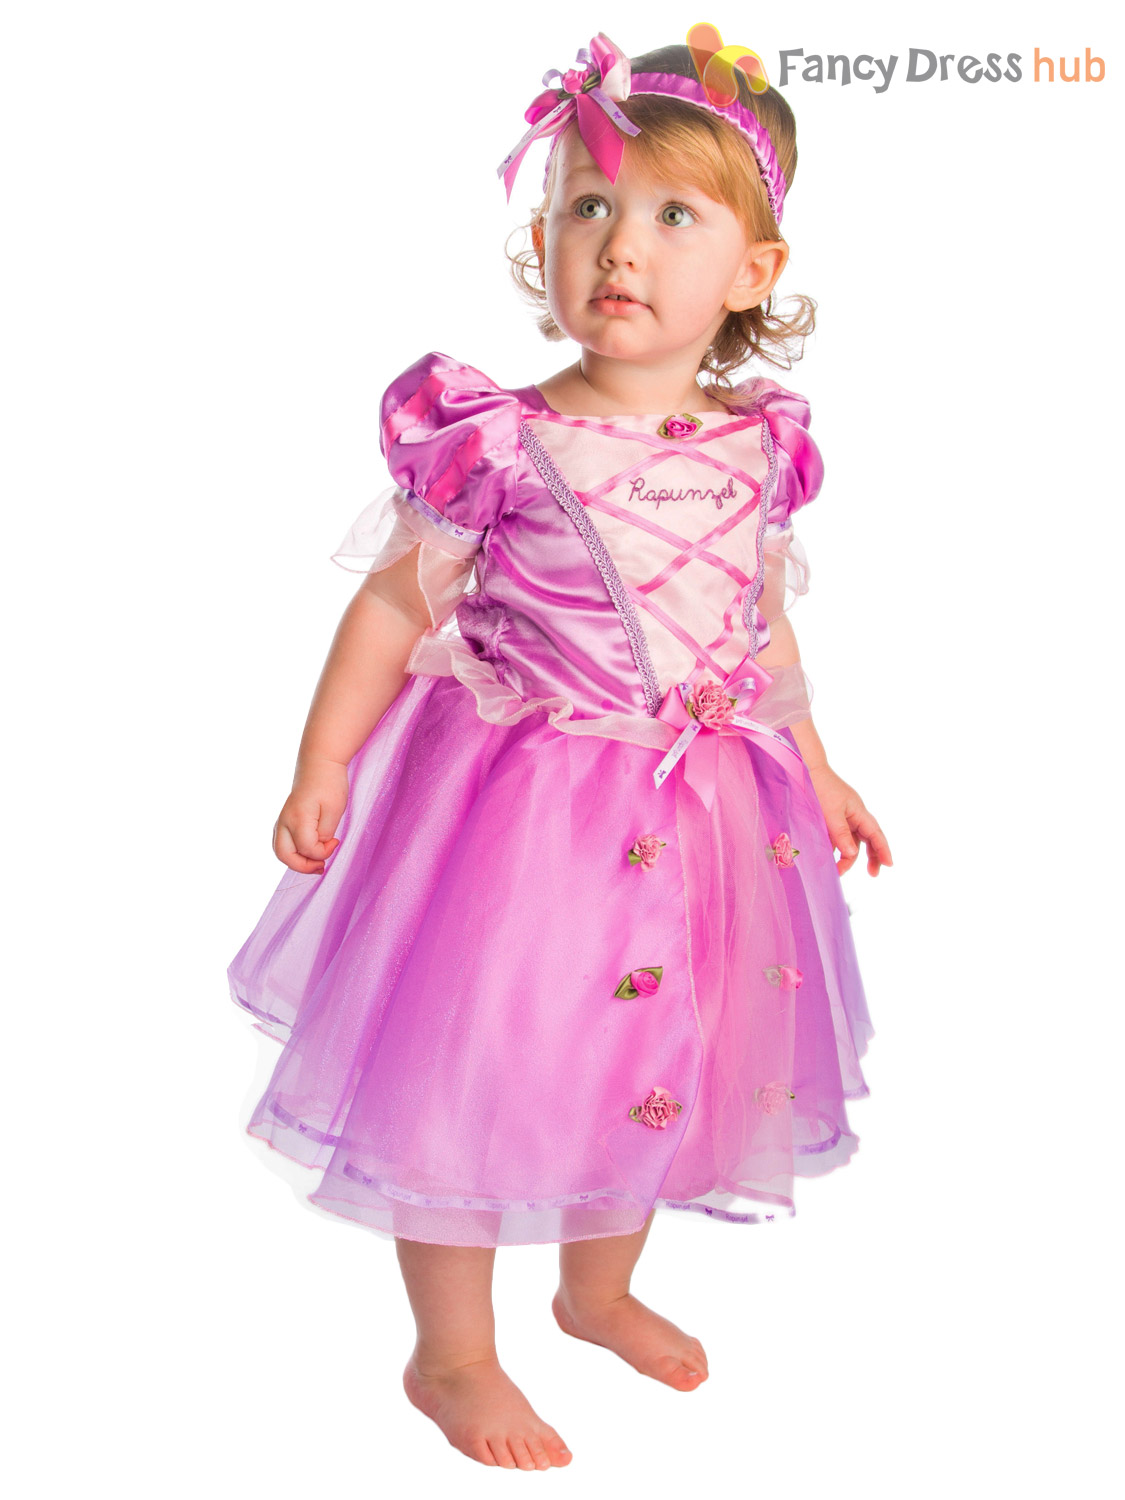 Dress up princess - Baby Toddler Deluxe Disney Princess Costume Girl Fairytale